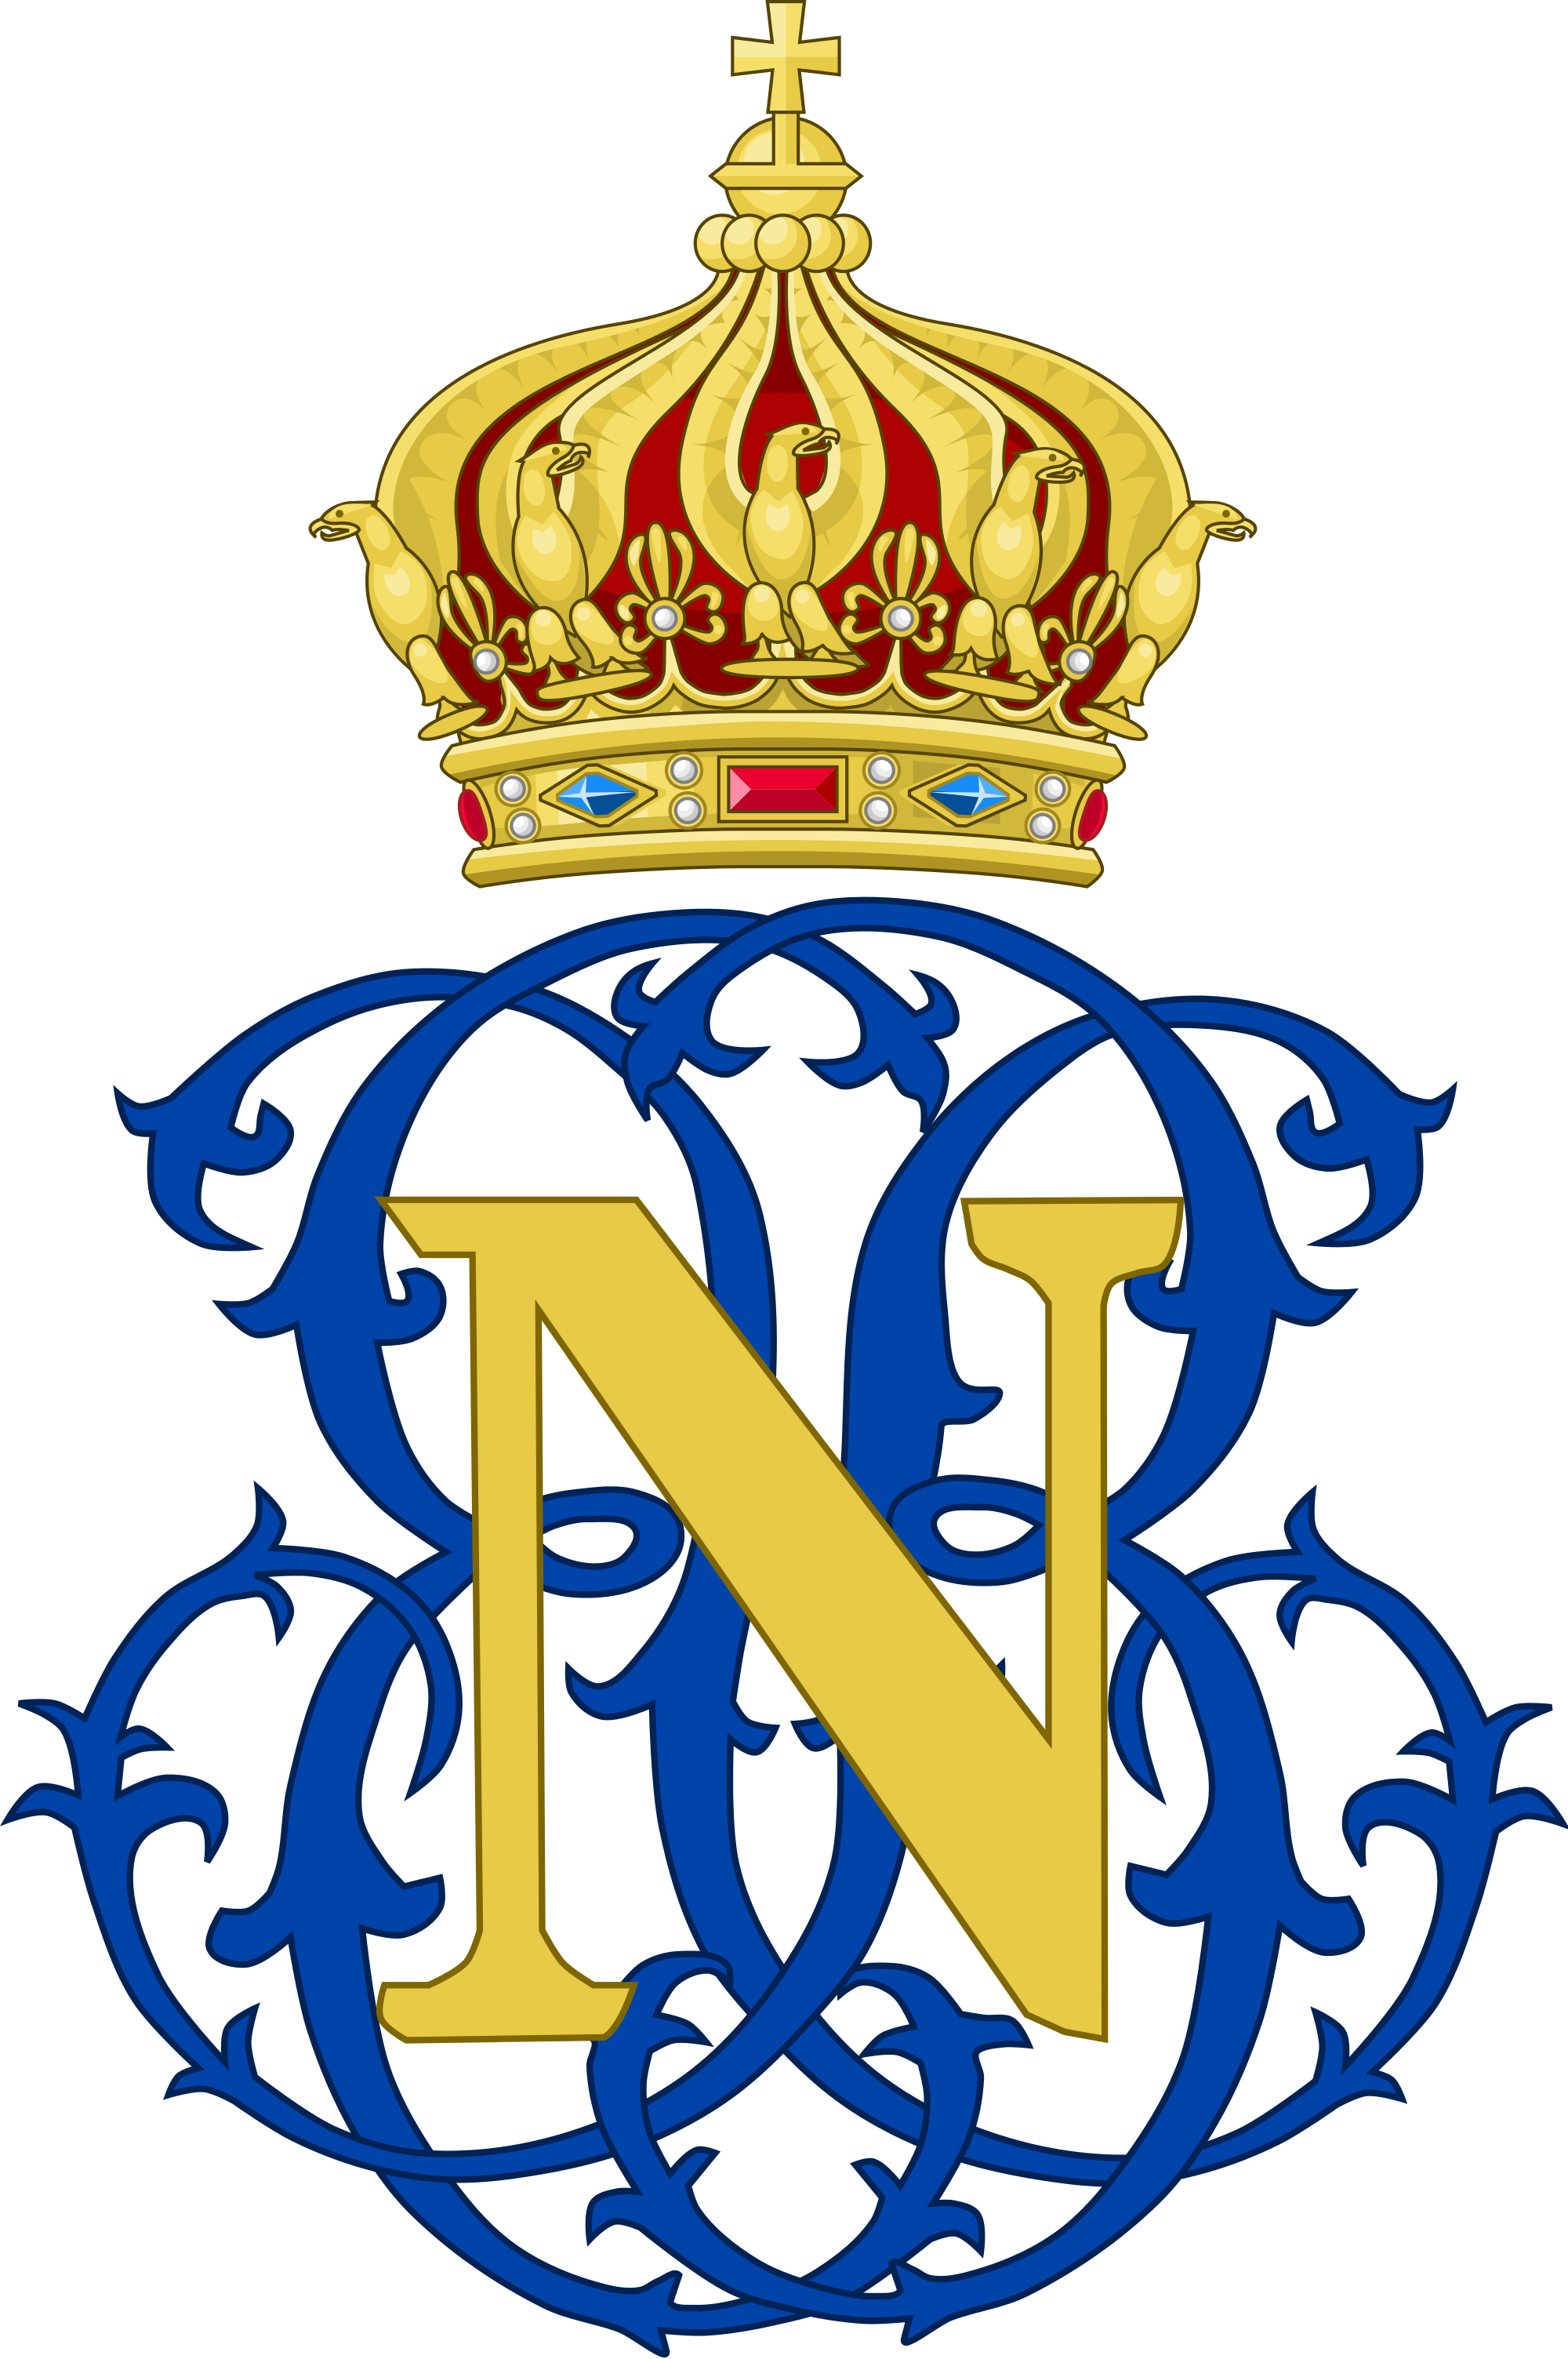 Napoleon prince imperial of france royal monograms pinterest napoleon prince imperial of france biocorpaavc